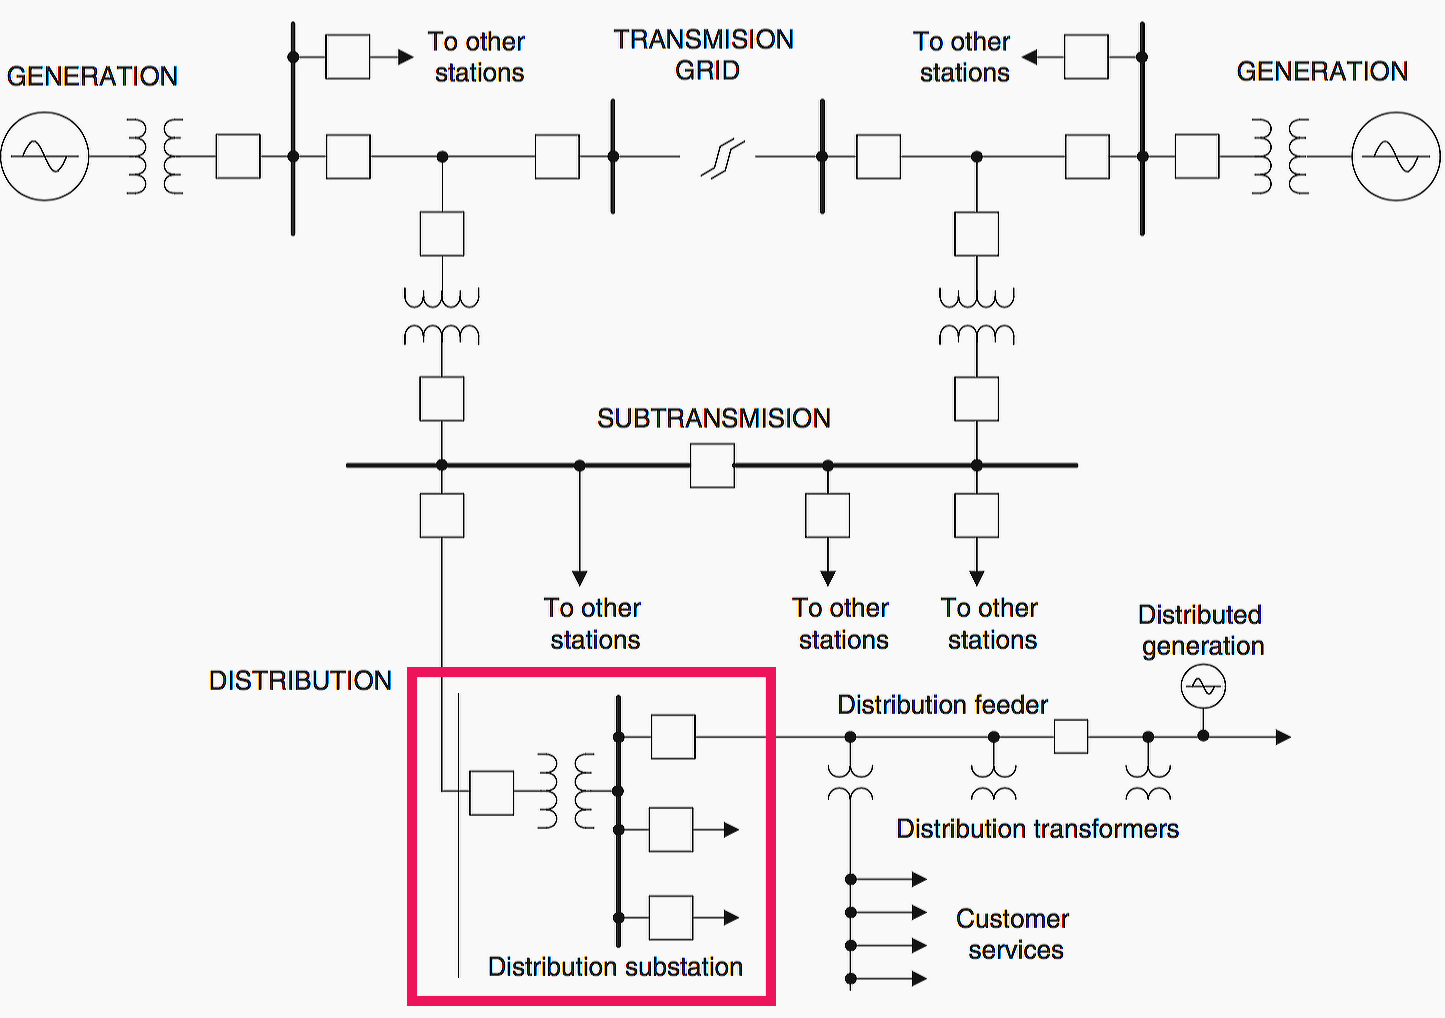 Electrical Power Distribution Circuit Diagram Wire Data Schema Fukang Air Conditioner Signalprocessing Single Line Of Major Components System From Rh Pinterest Com Electric